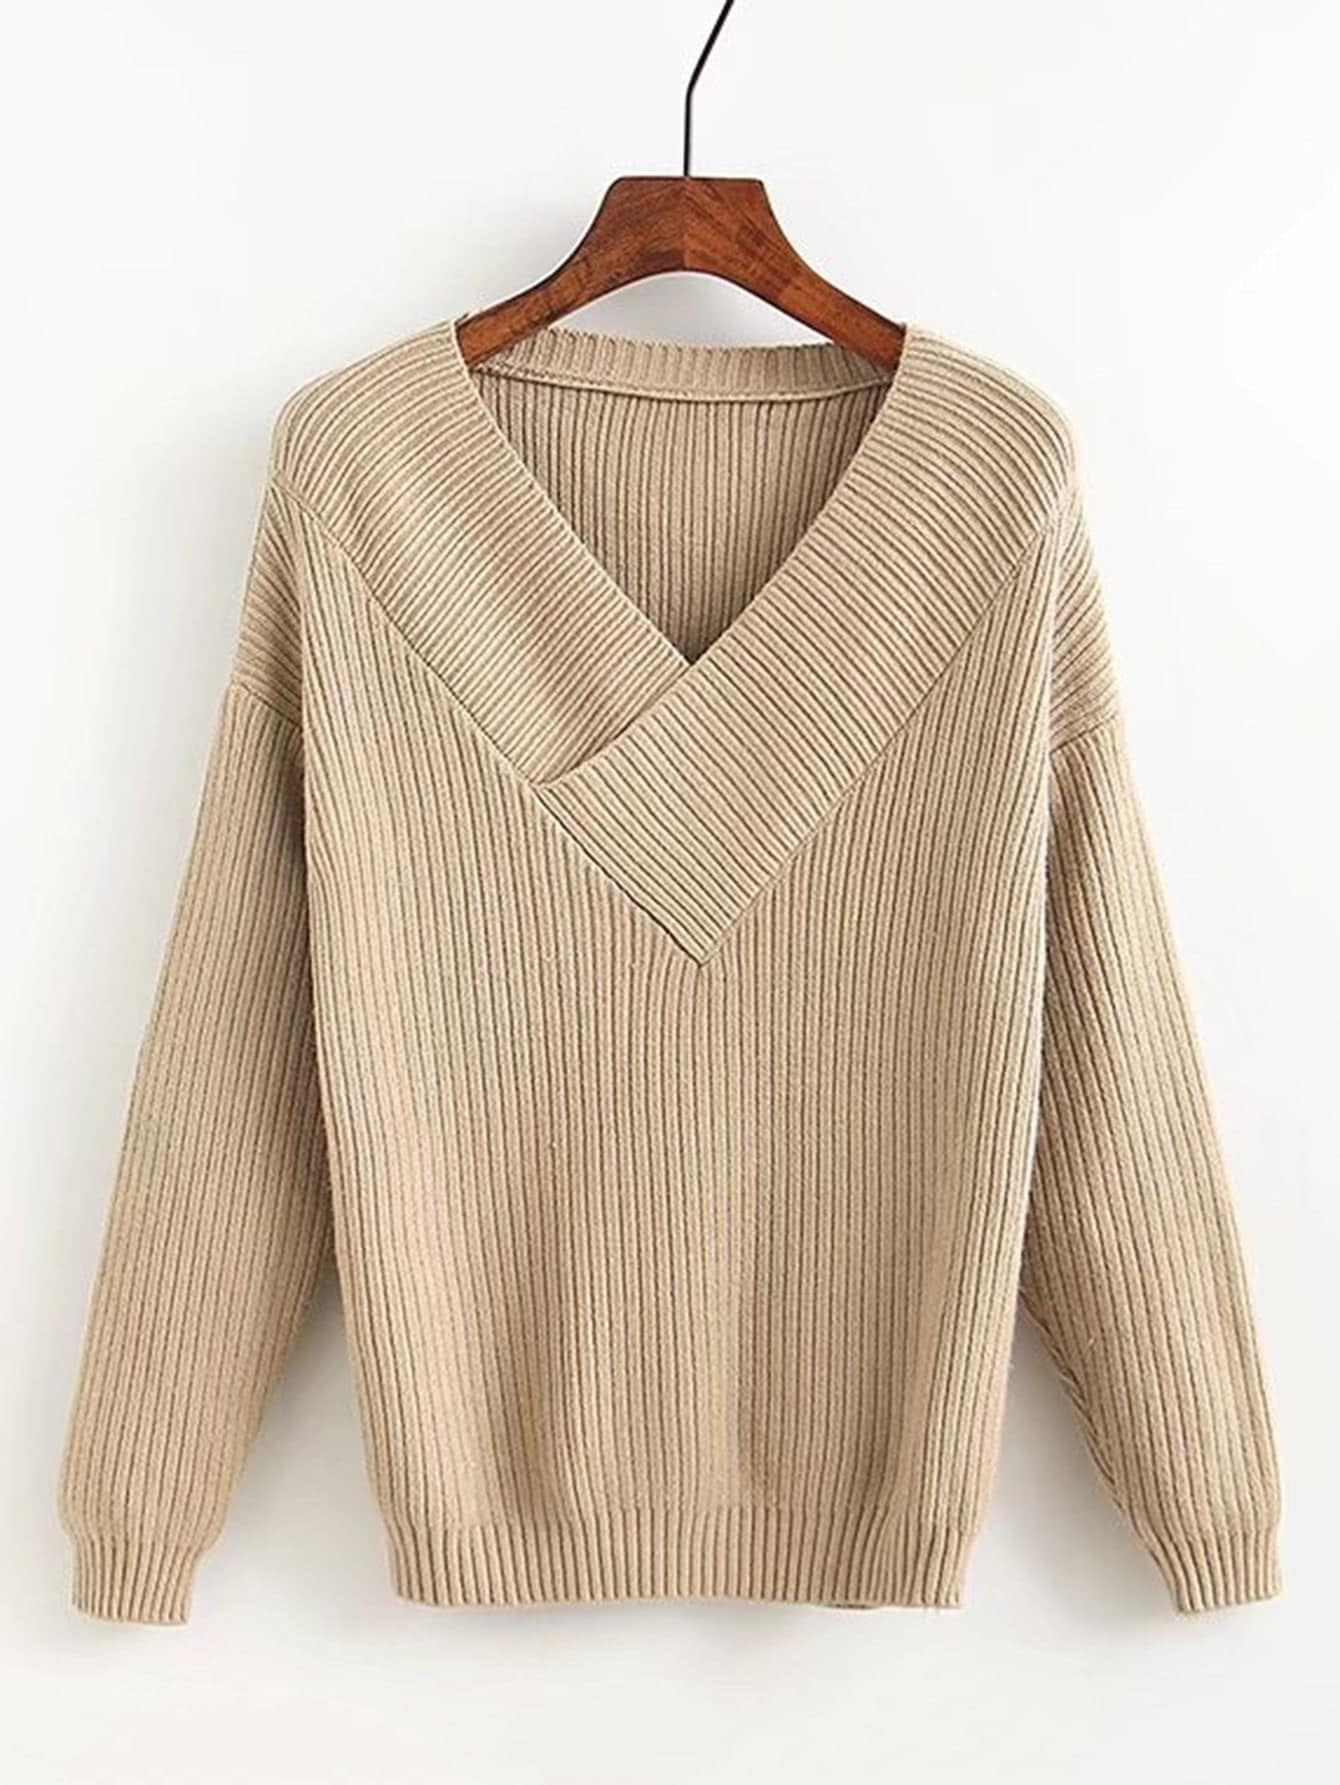 Surplice V Neck Ribbed Knitwear sweater170914204